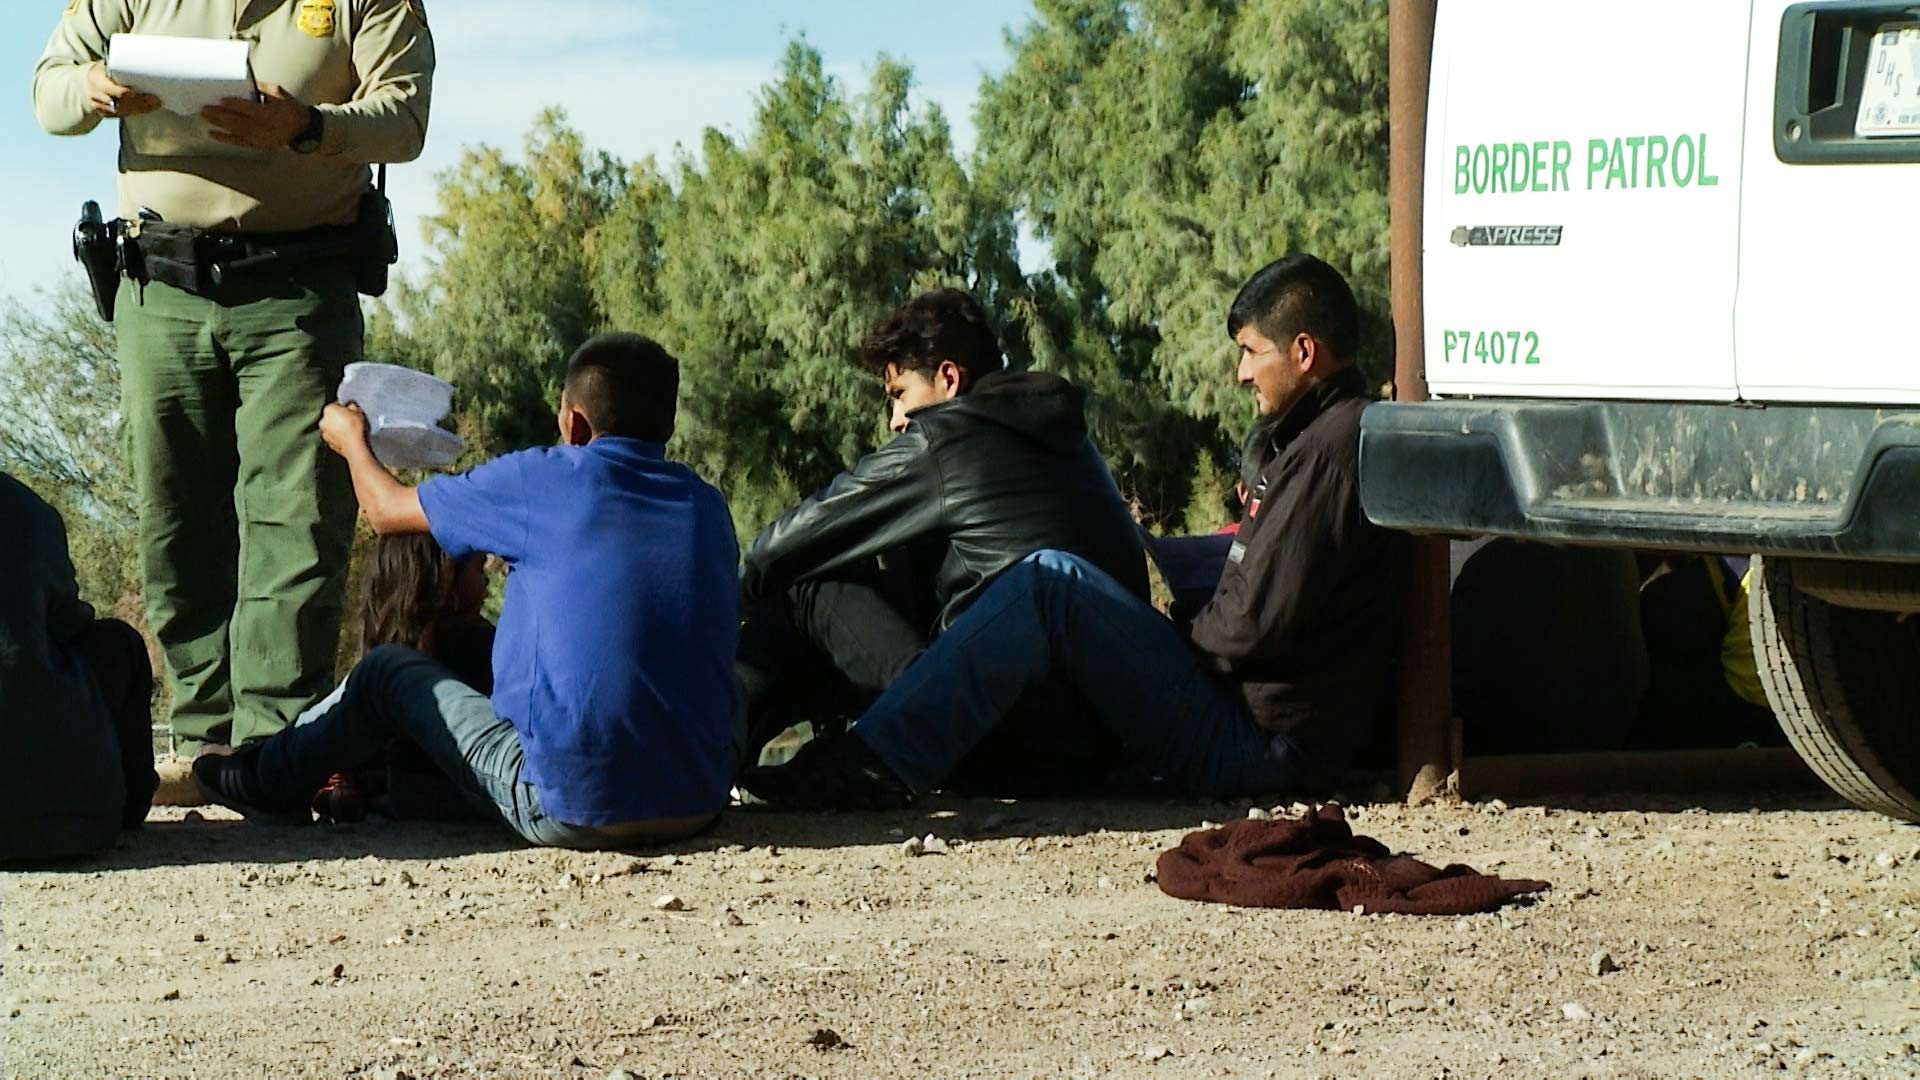 A group of men, women and children prepare their documents after approaching and surrendering to Border Patrol in the Yuma Sector, 2019.